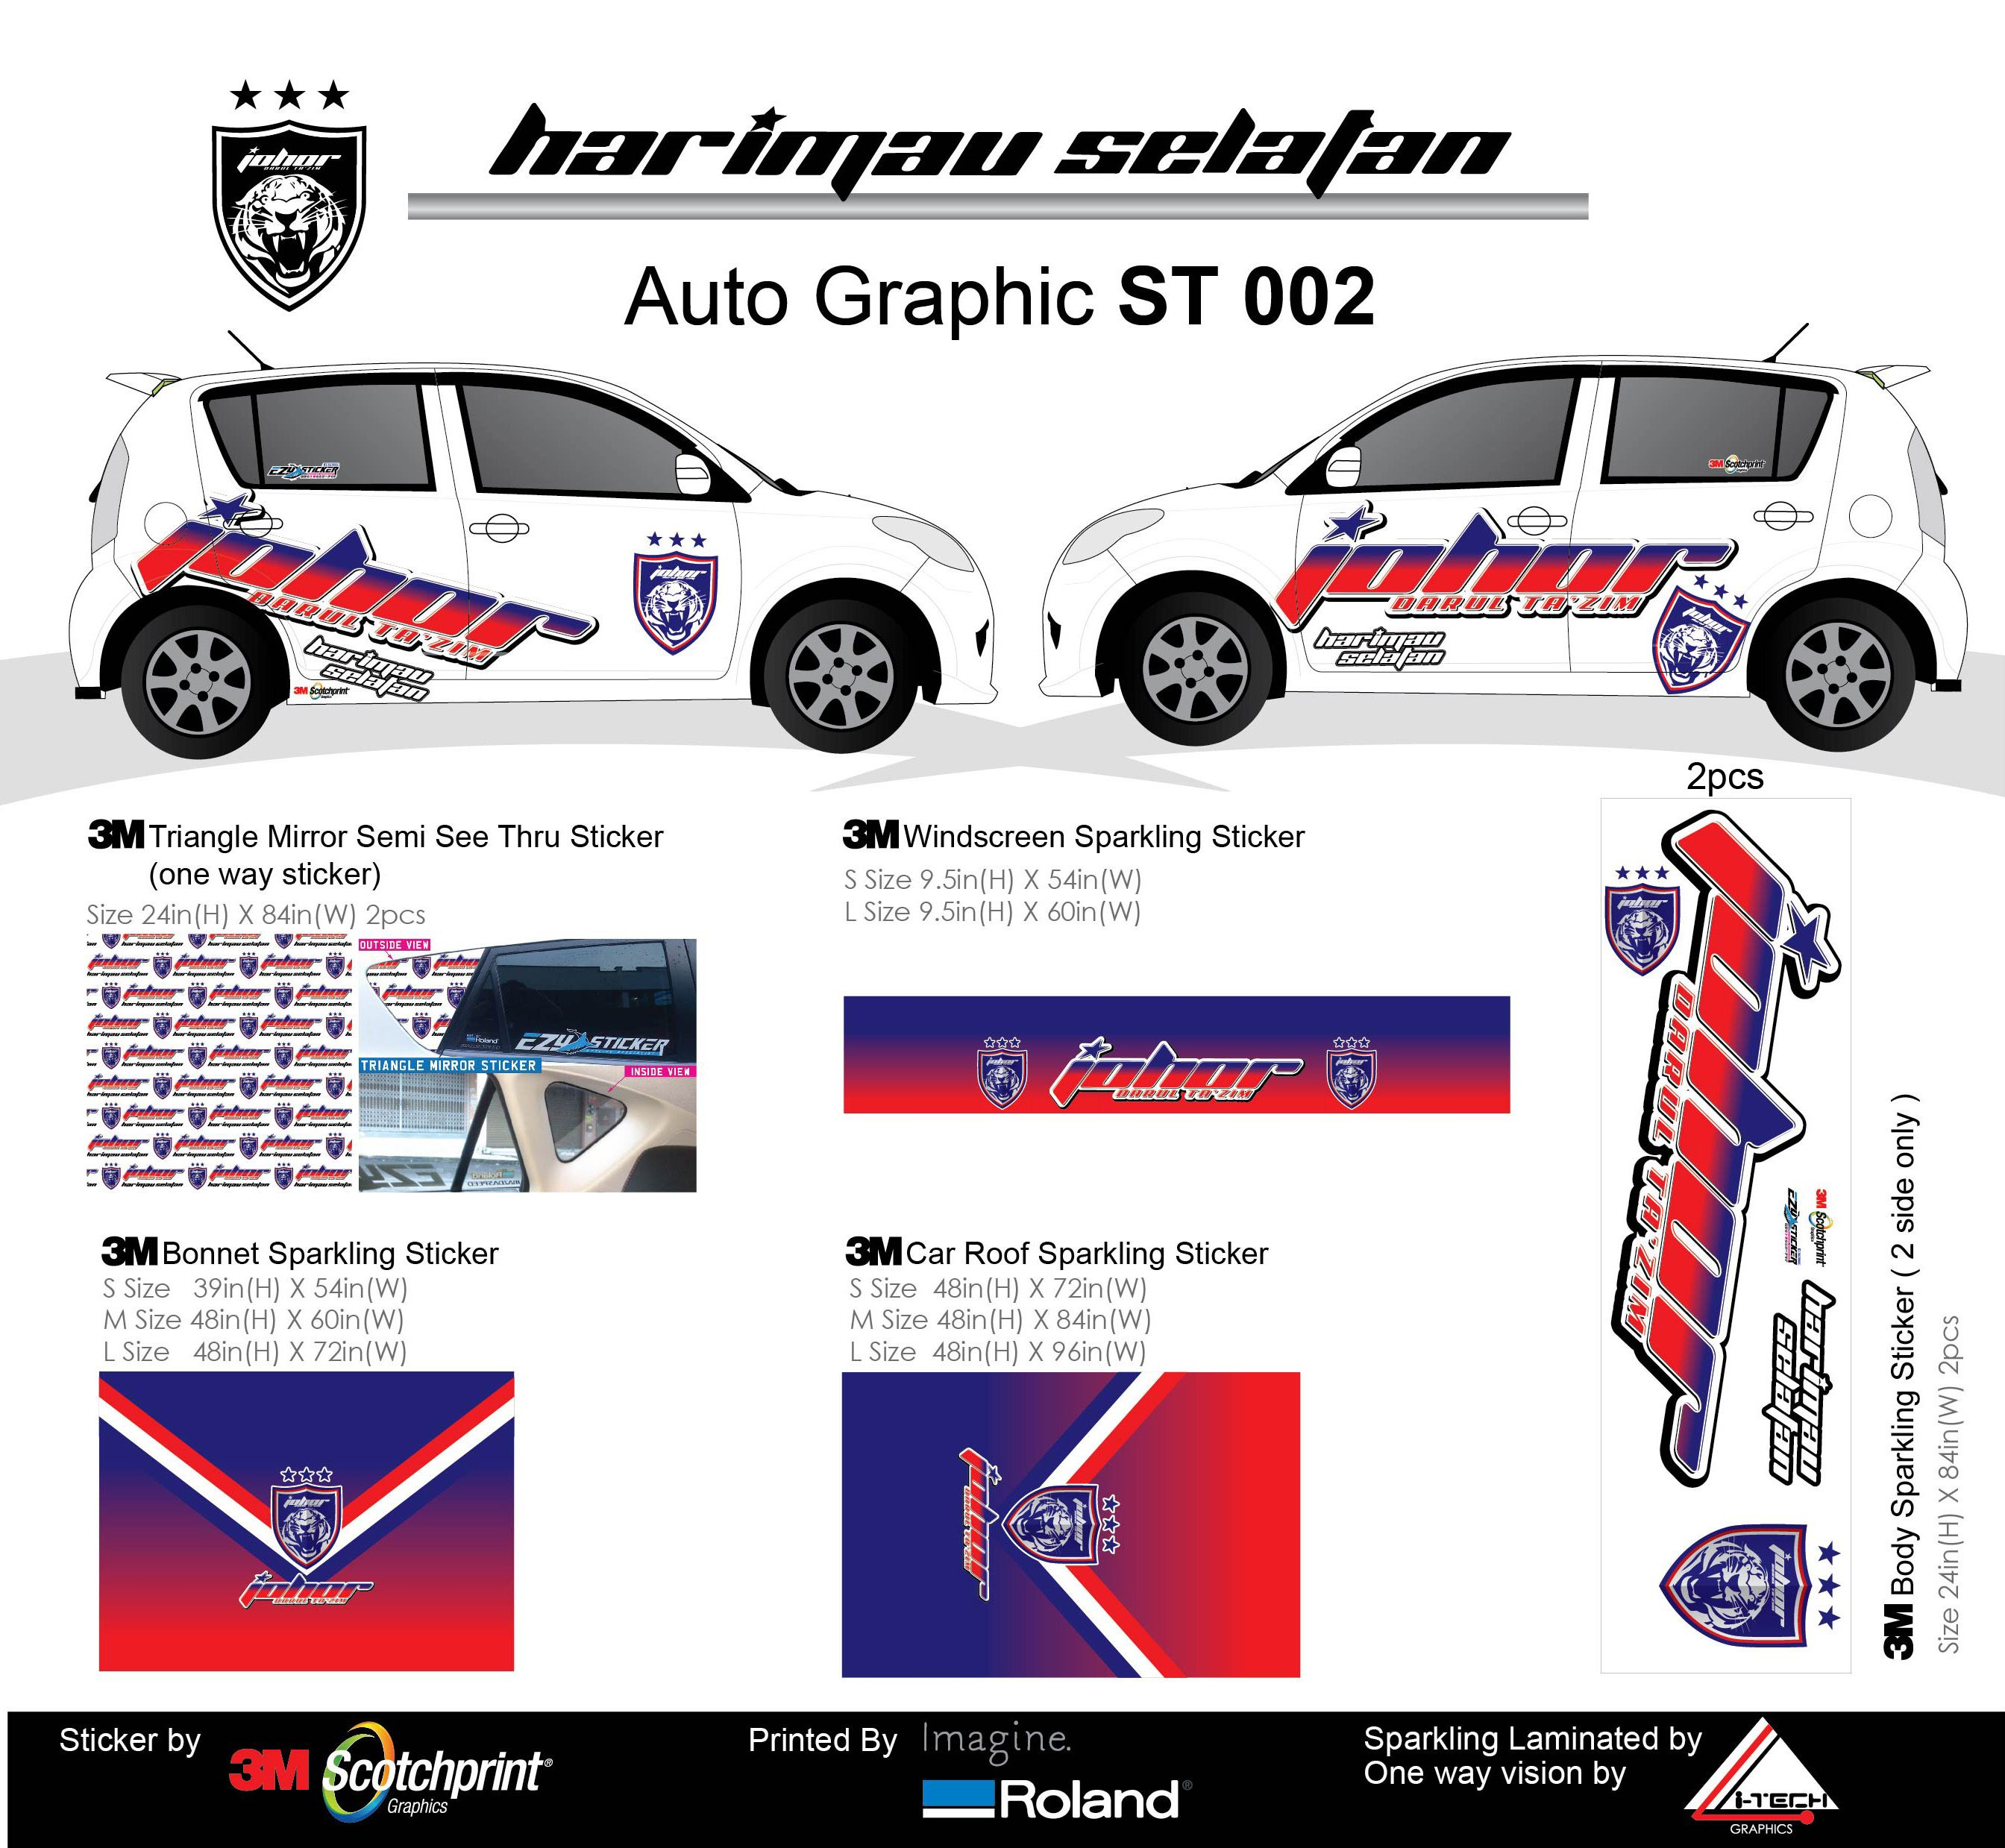 Car mirror sticker design - Produce In Removable 3m Sticker With Sparkling Effect Auto Graphics Harimau Selatan Aka